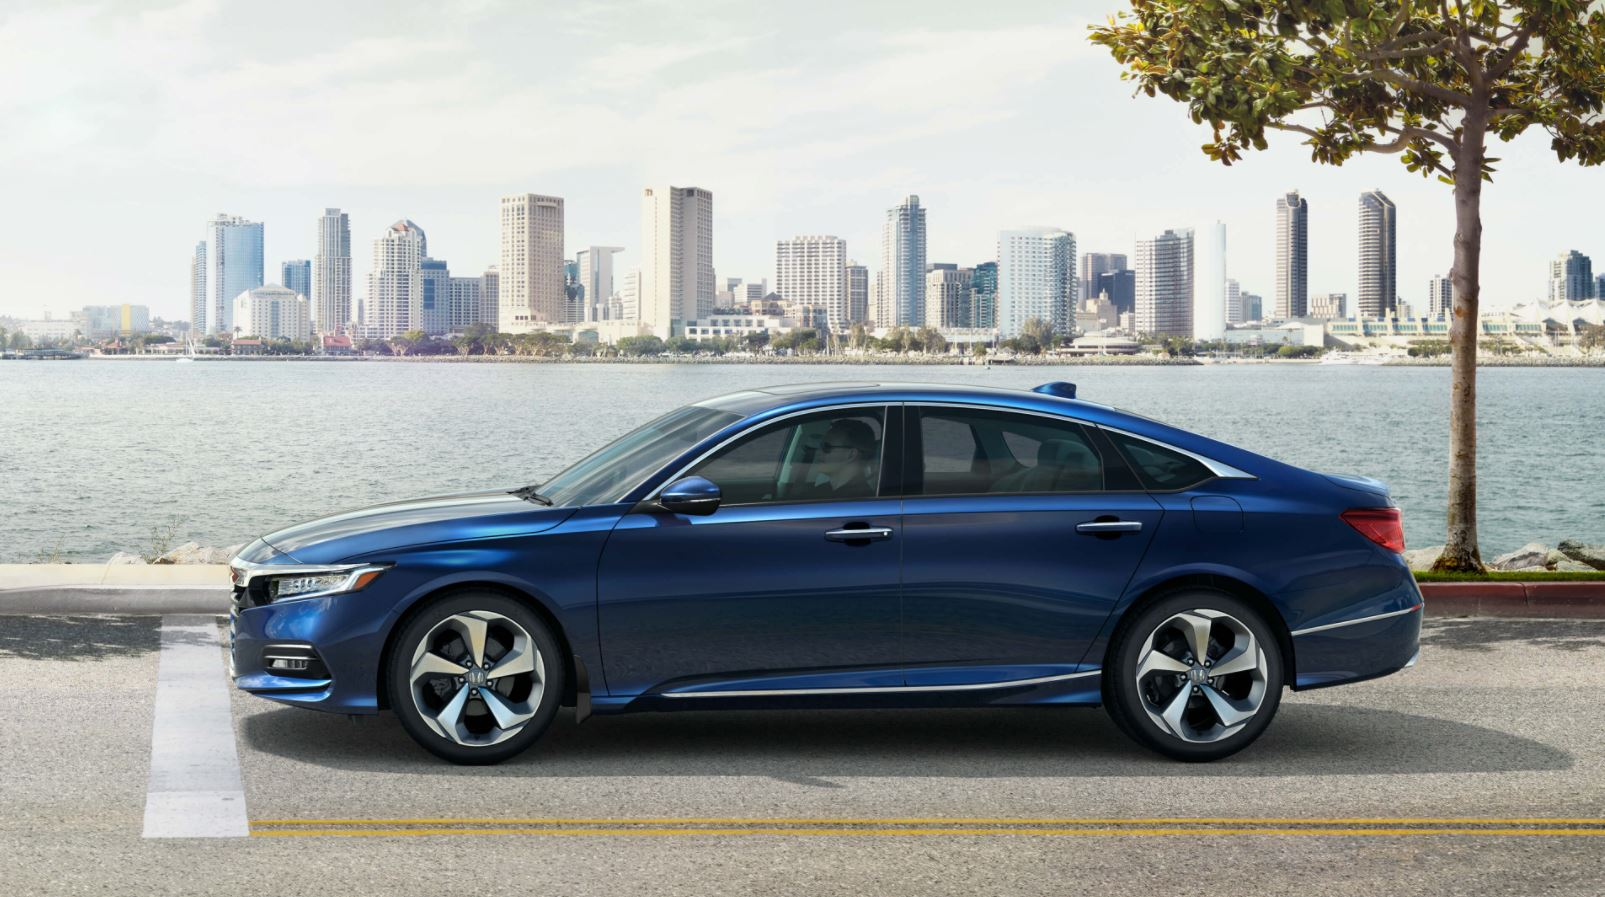 2018 Honda Accord at Richmond Hill Honda in the Greater Toronto Area (GTA, Ontario)